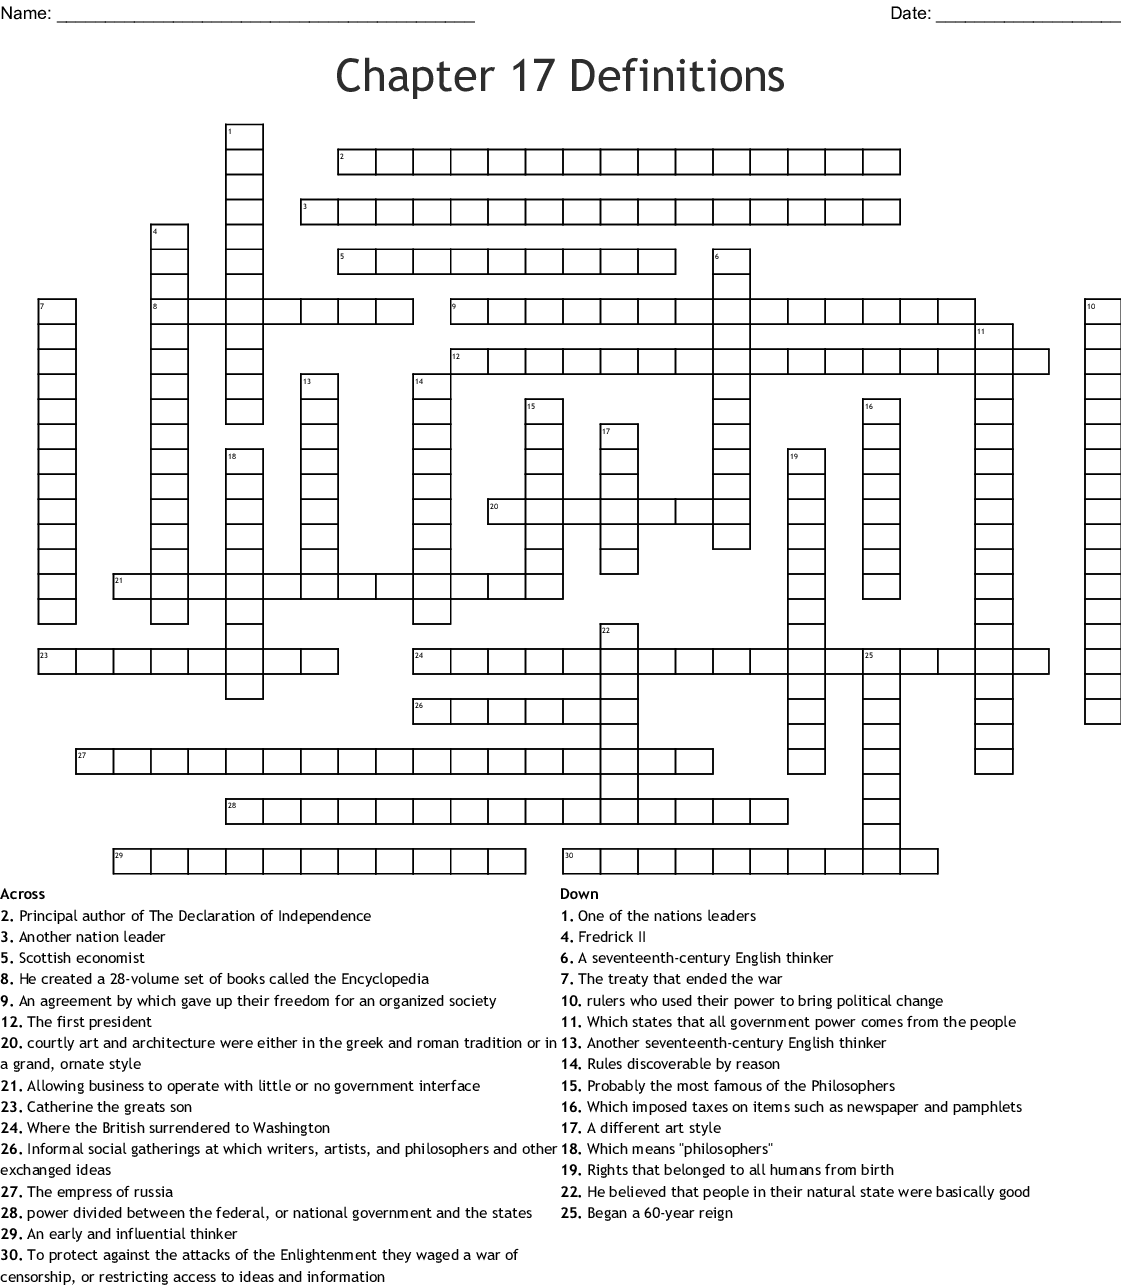 Chapter 17 Definitions Crossword